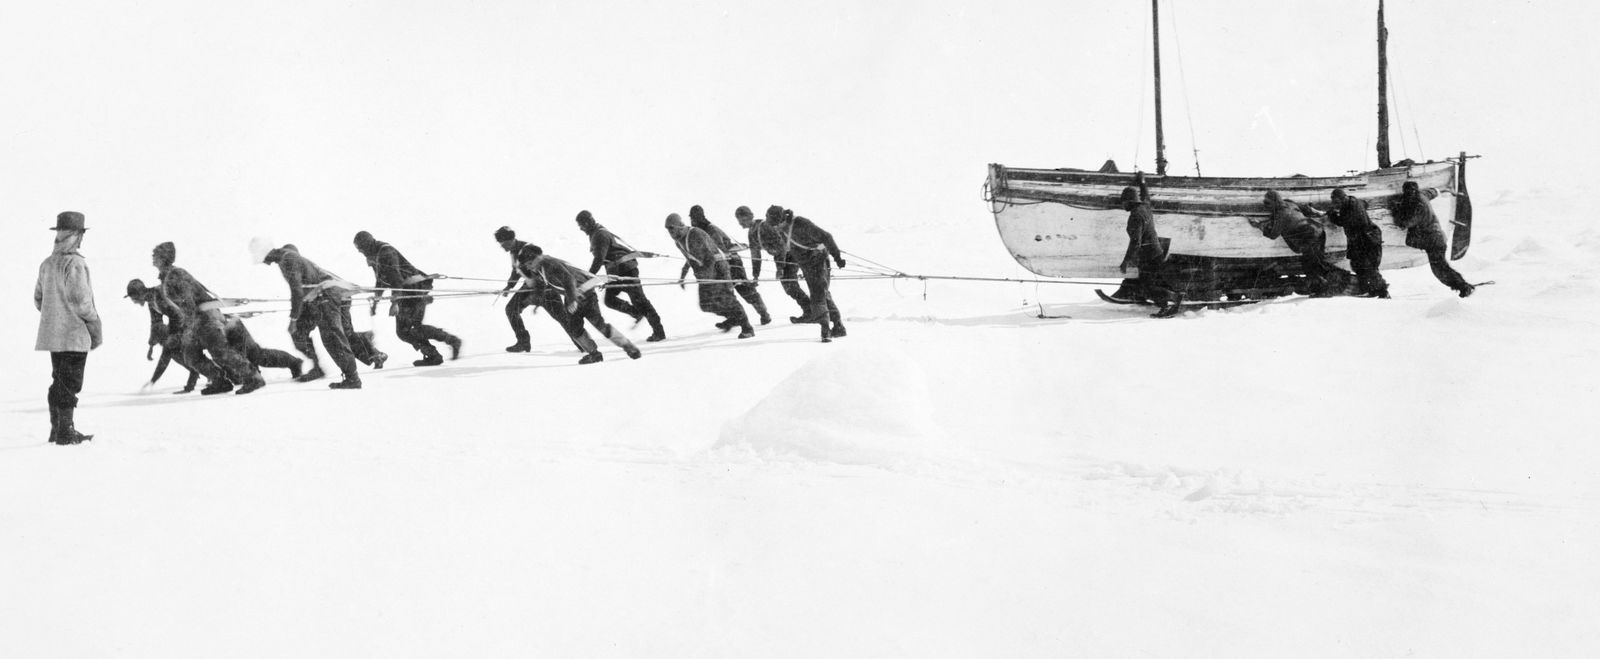 Men work together to haul a boat ashore.